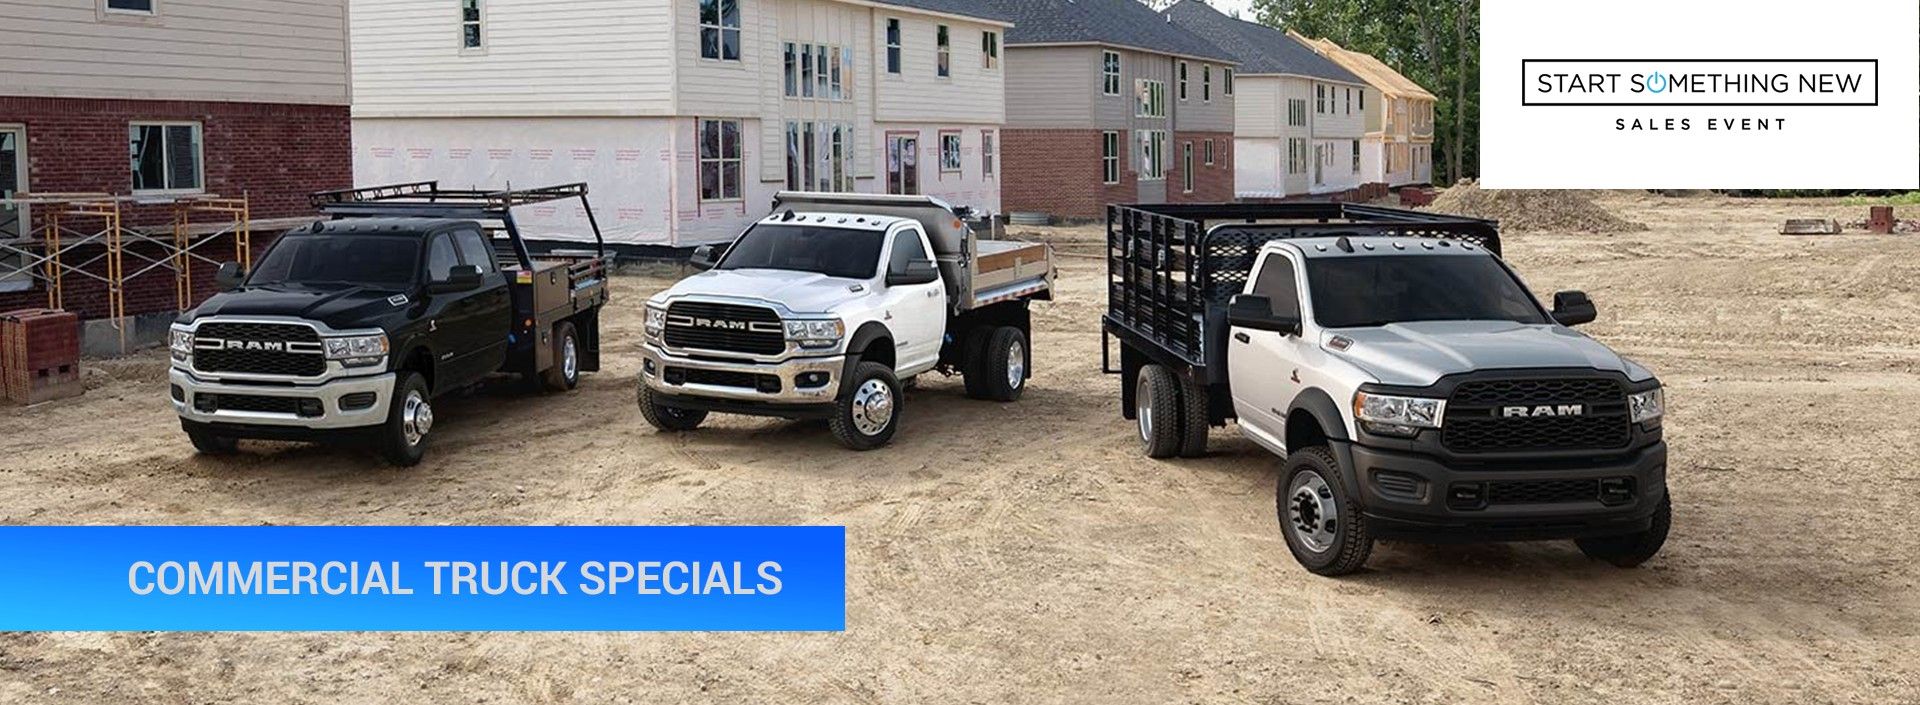 Commercial Truck Specials - Start Something New Event